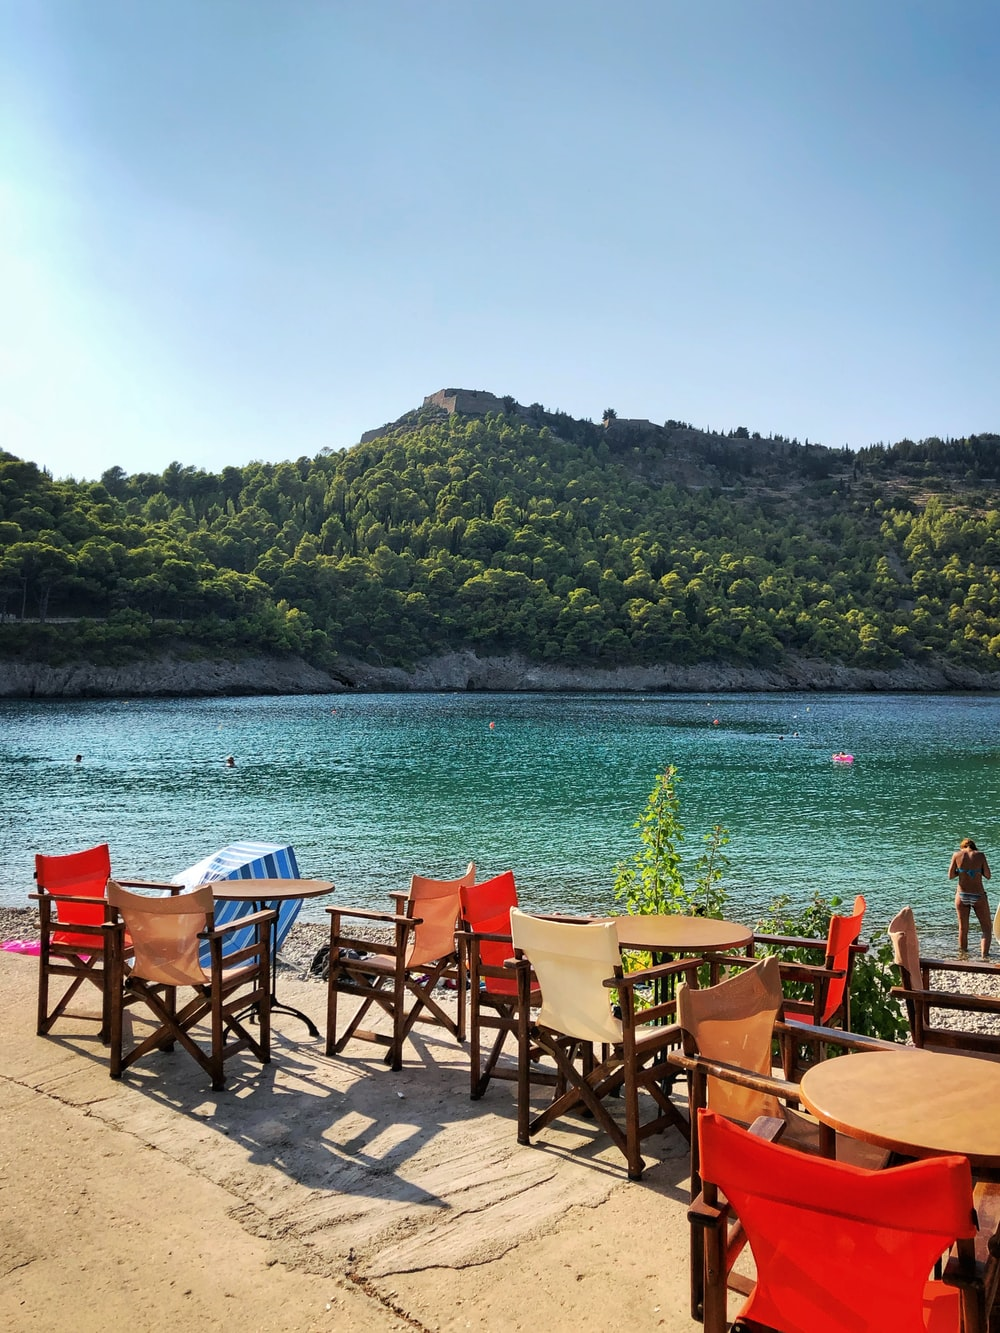 chairs and tables near body of water and mountain